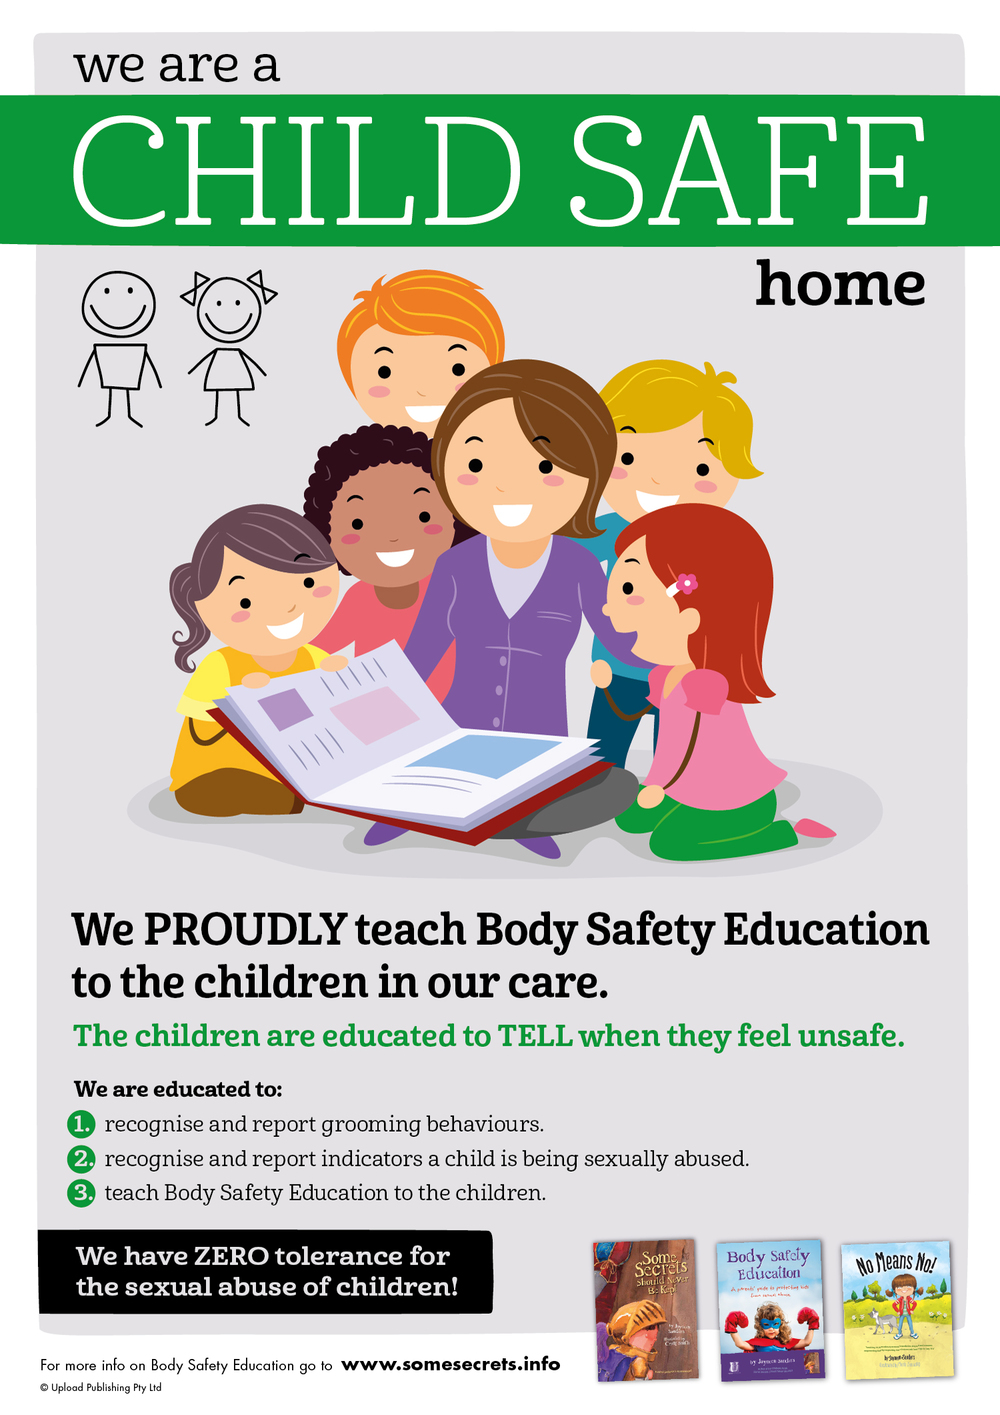 ChildSafe_Poster_Home_UK.jpg